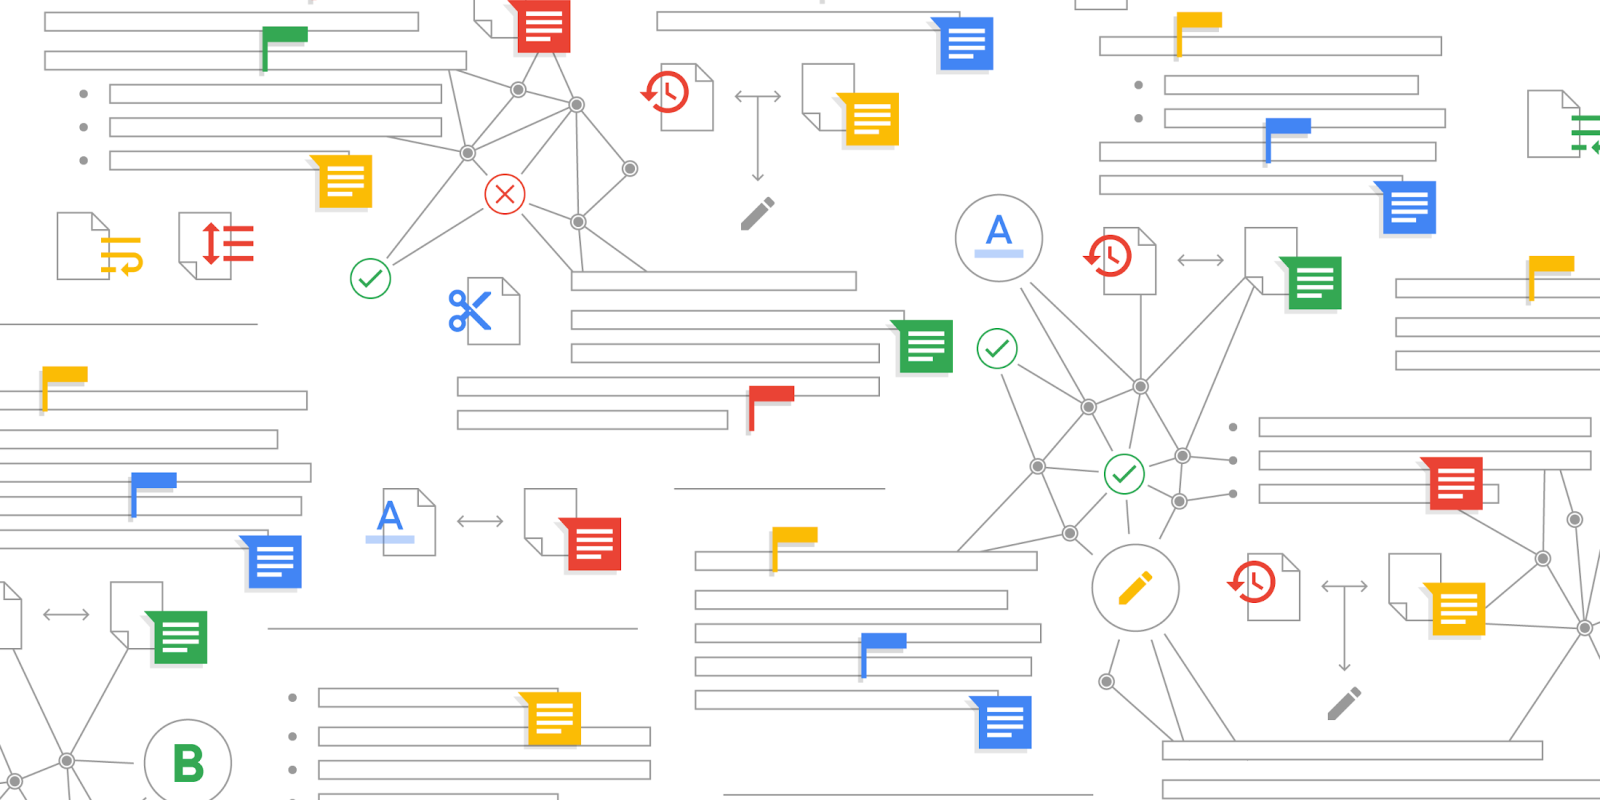 Google Docs rolling out dedicated 'Compare Documents' tool